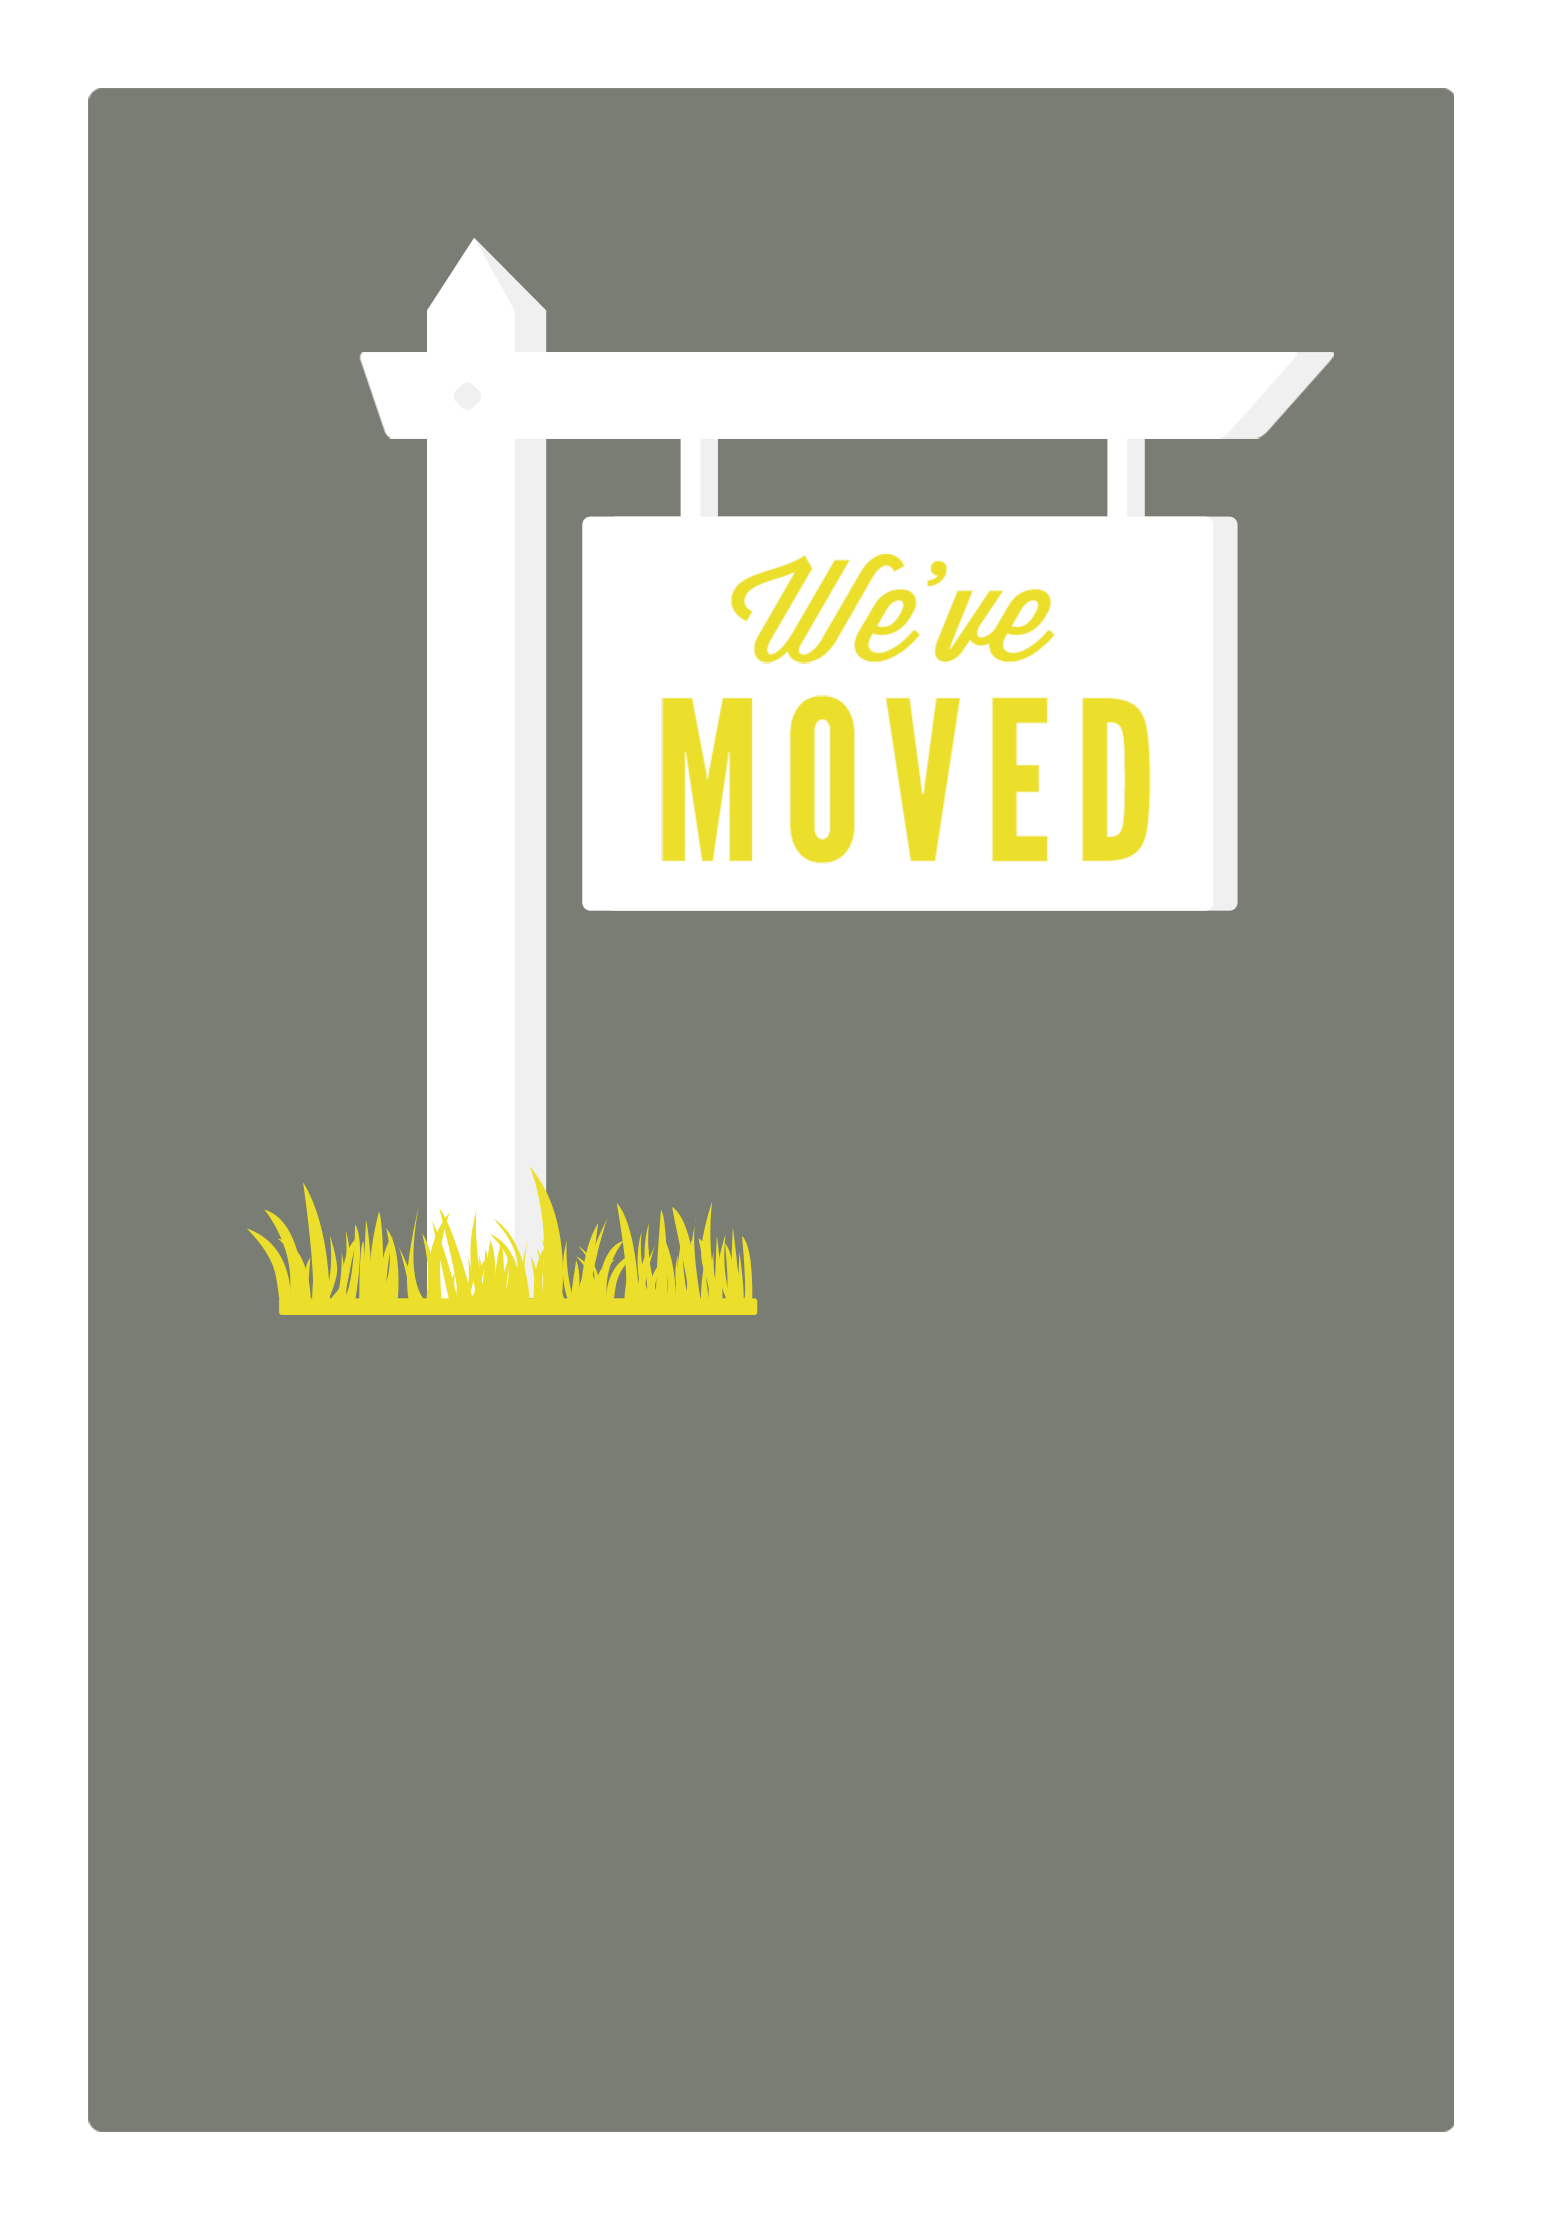 Our New Address - Free Printable Moving Announcement Template - Free Printable Moving Announcement Templates